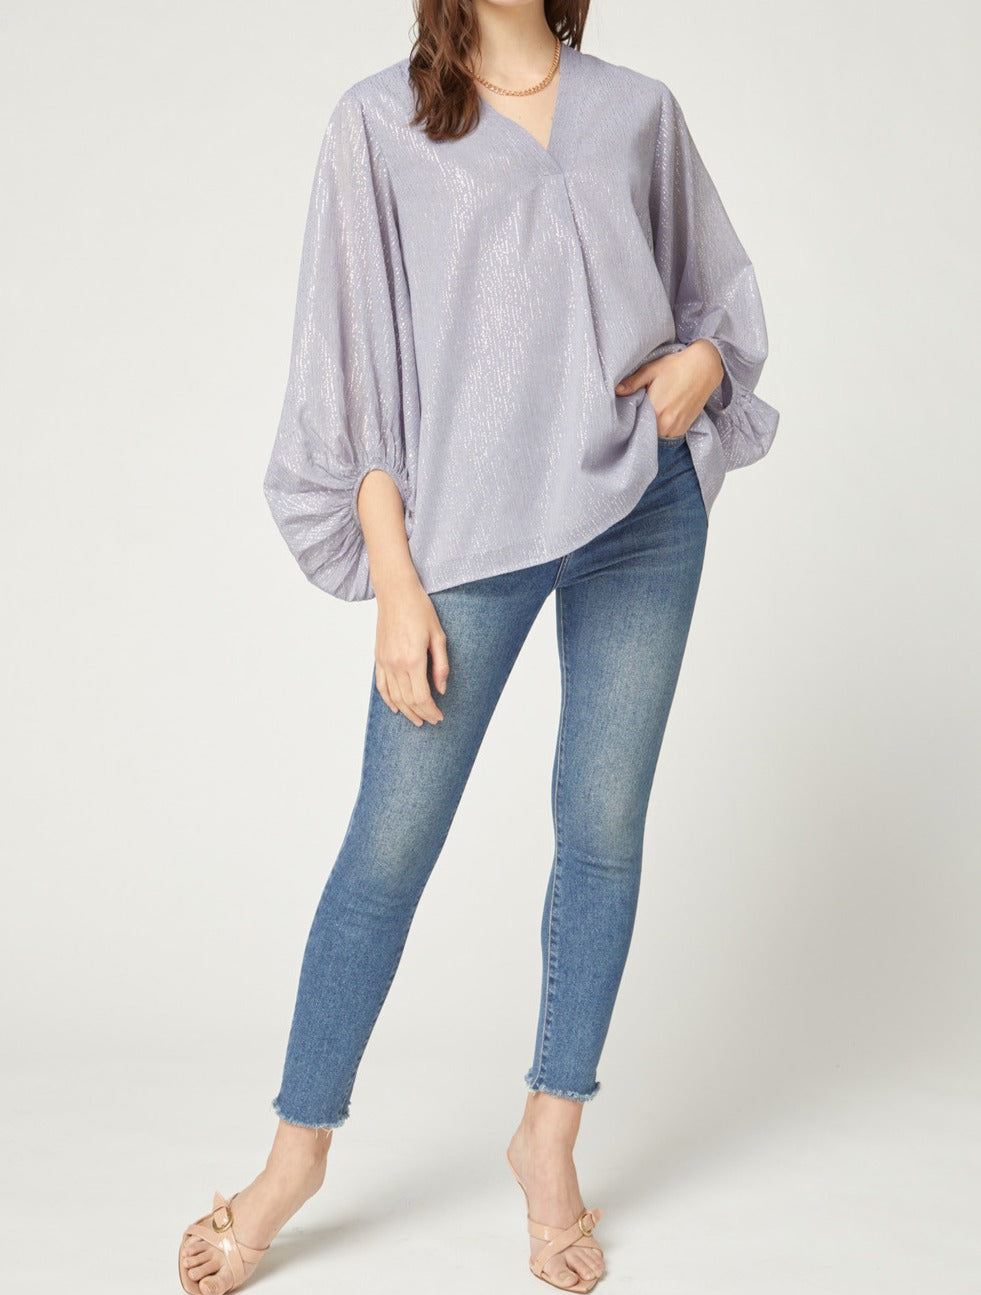 Misty Blue Bubble Sleeve Top With Gold Speckles